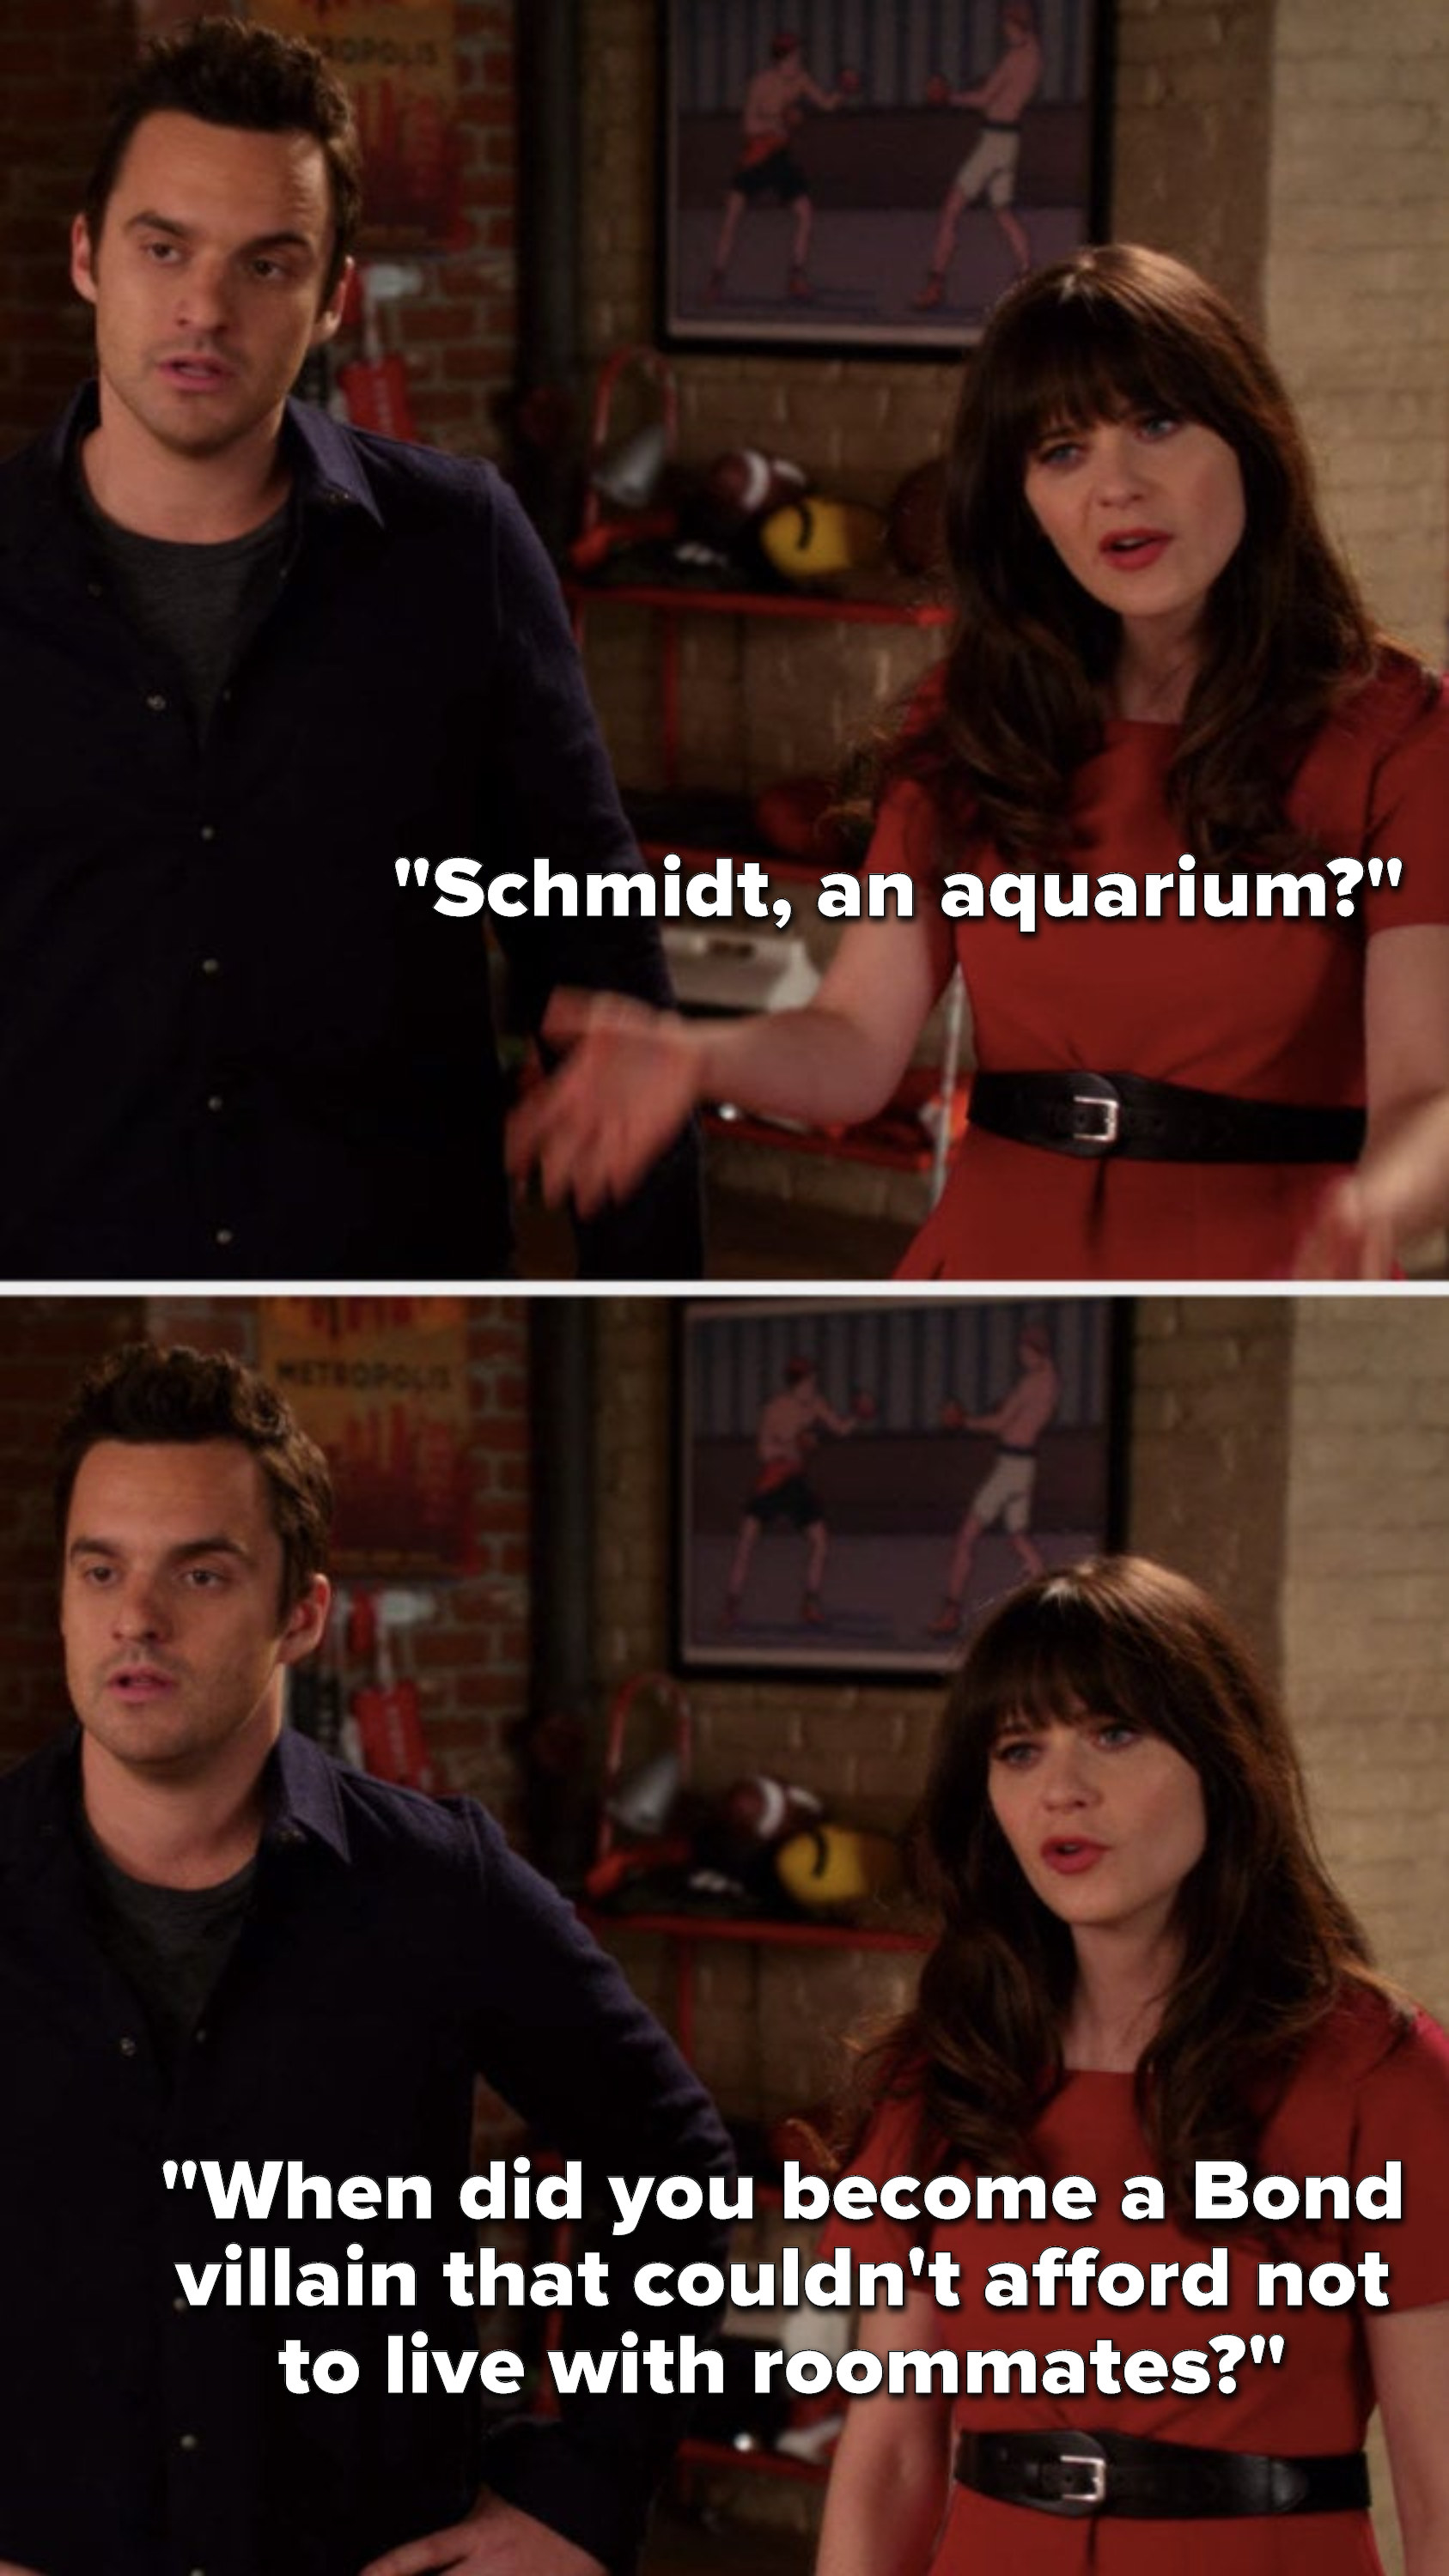 Jess asks, Schmidt, an aquarium, when did you become a Bond villain that couldn't afford not to live with roommates